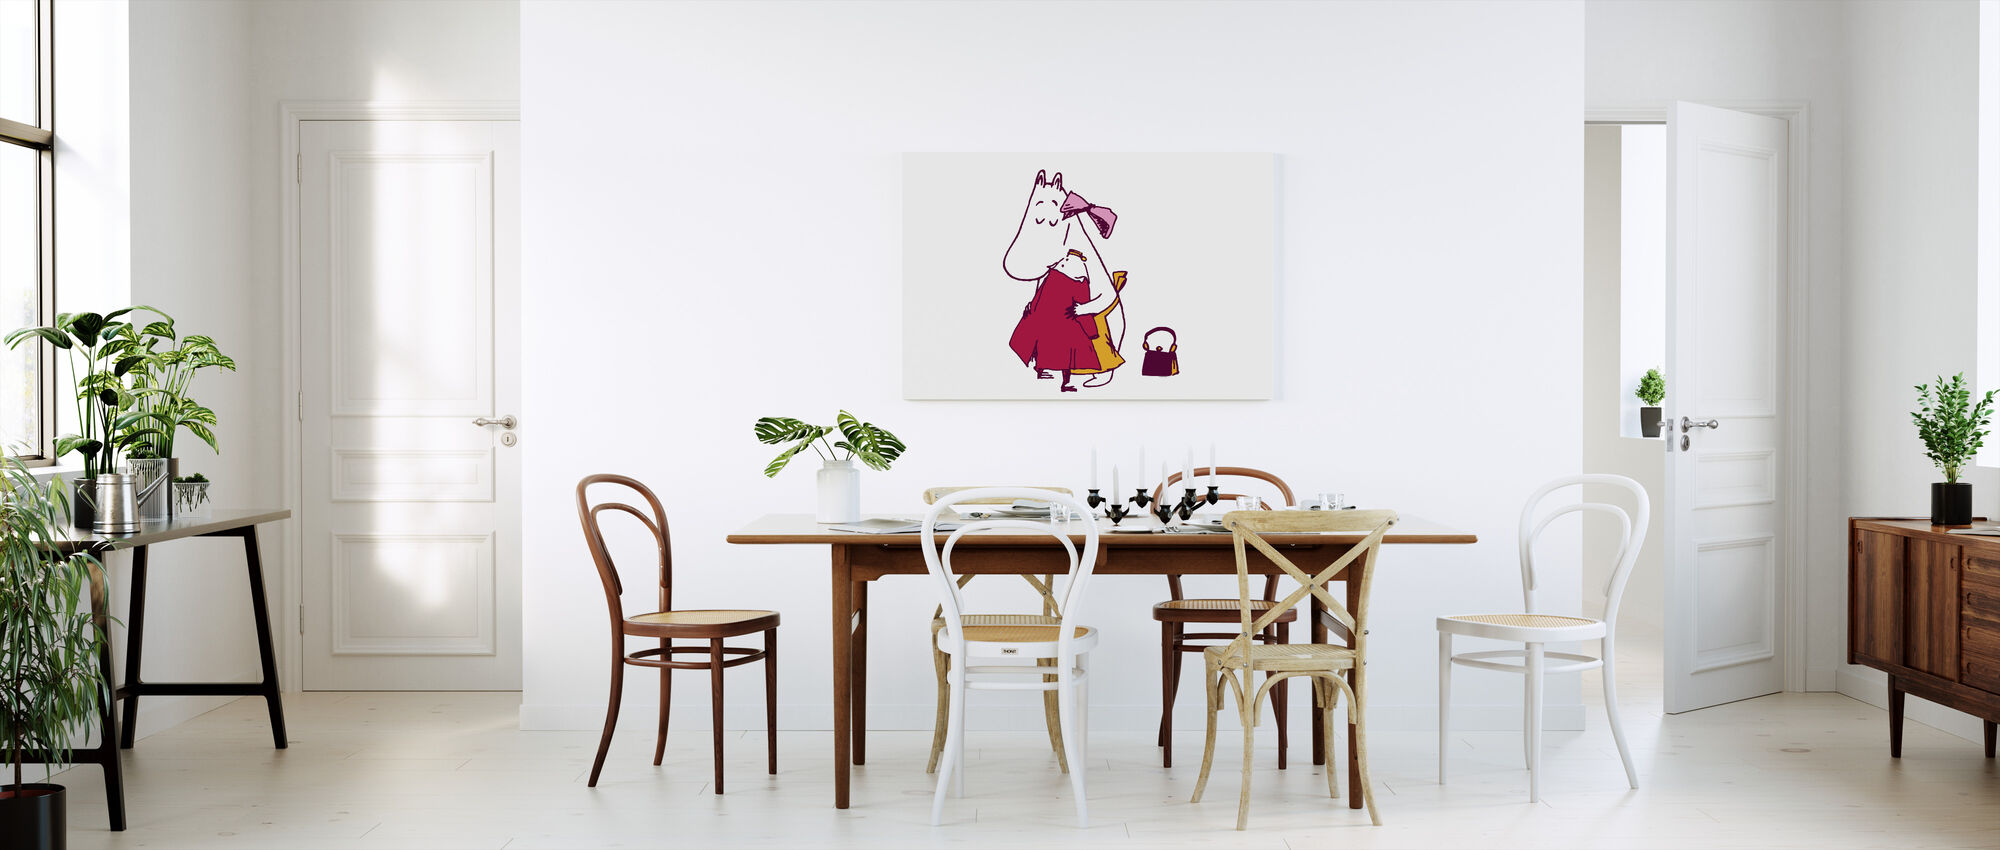 Moomin - The Invisible Child - Ninny and Moominmamma - Canvas print - Kitchen